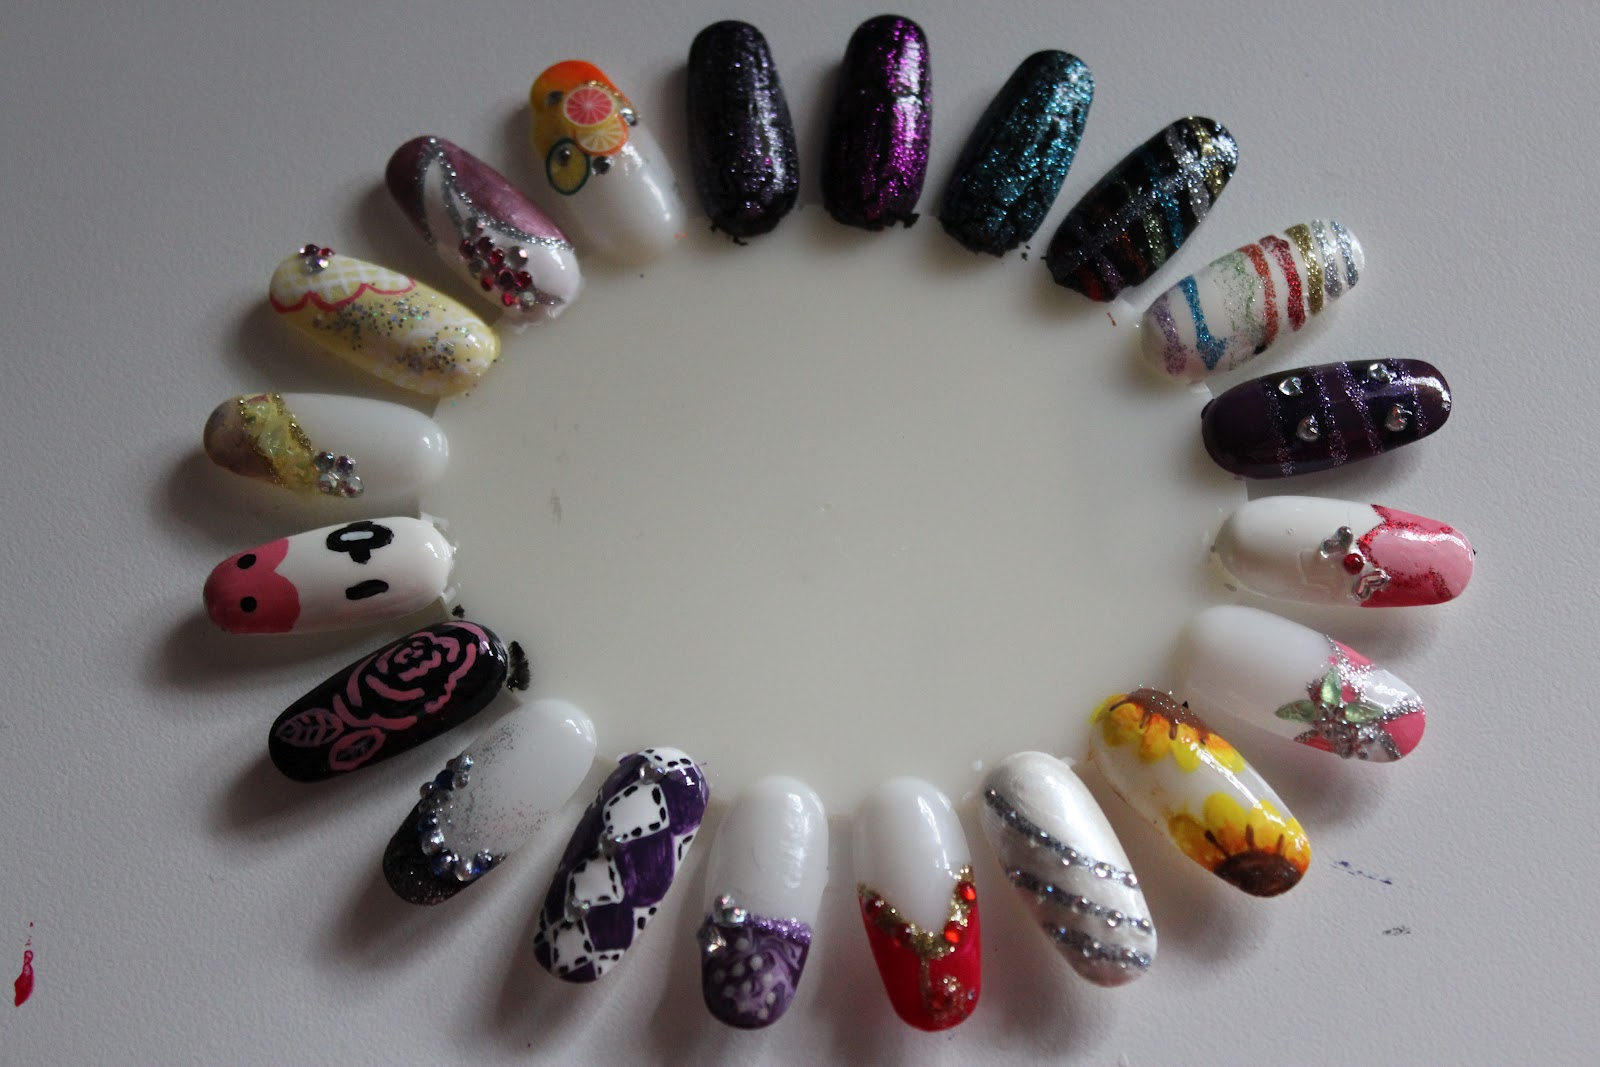 Baking Recipes and Nail Design all in one: long awaited nail designs ...